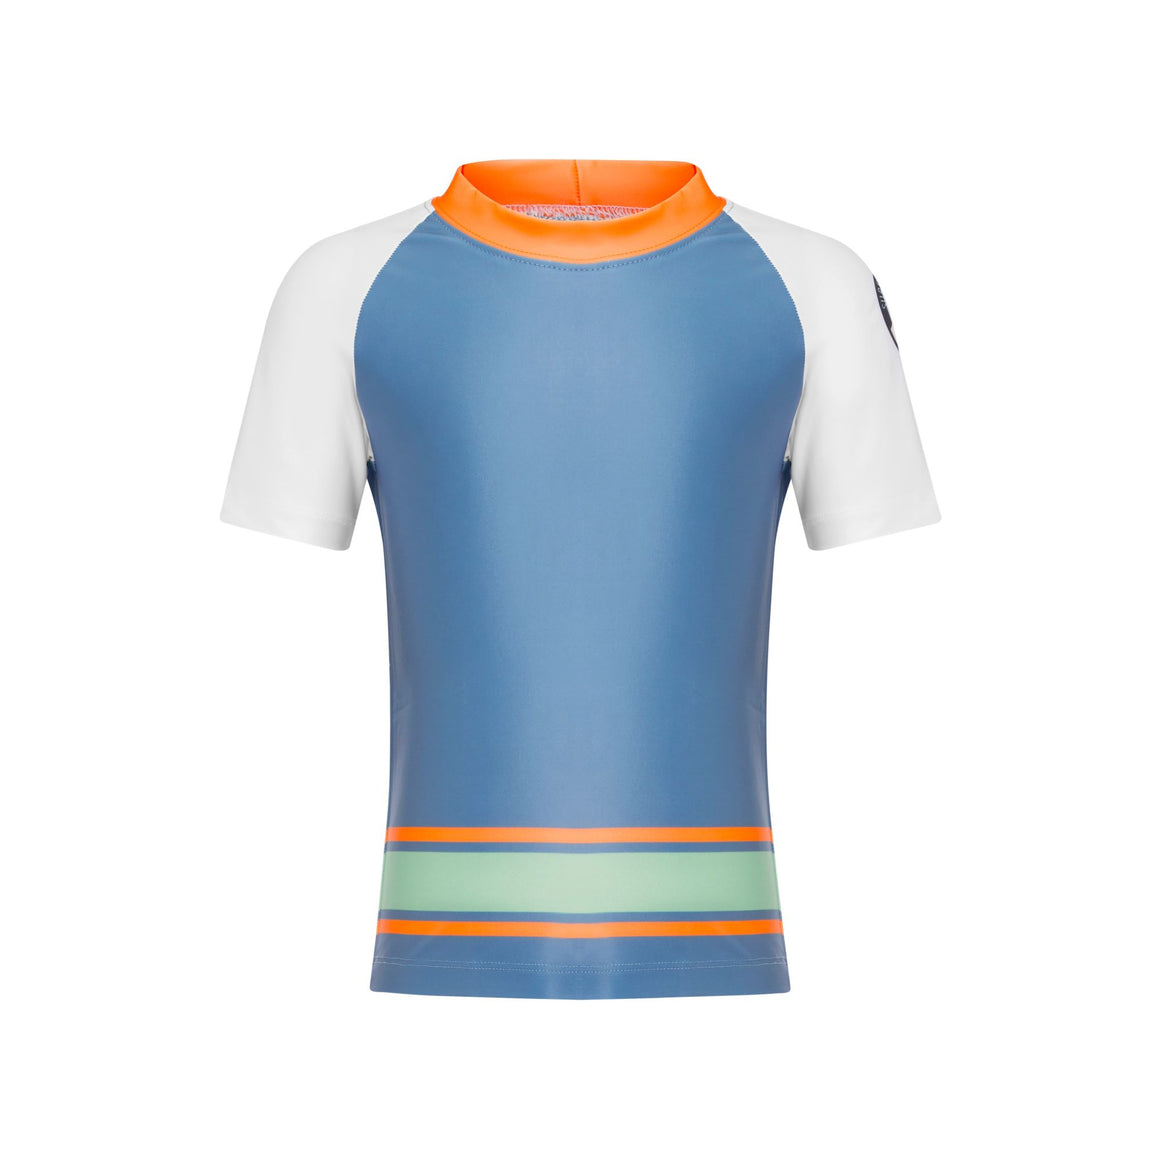 Short Sleeve Classic Rashie - Boys Retro Vibes Junior